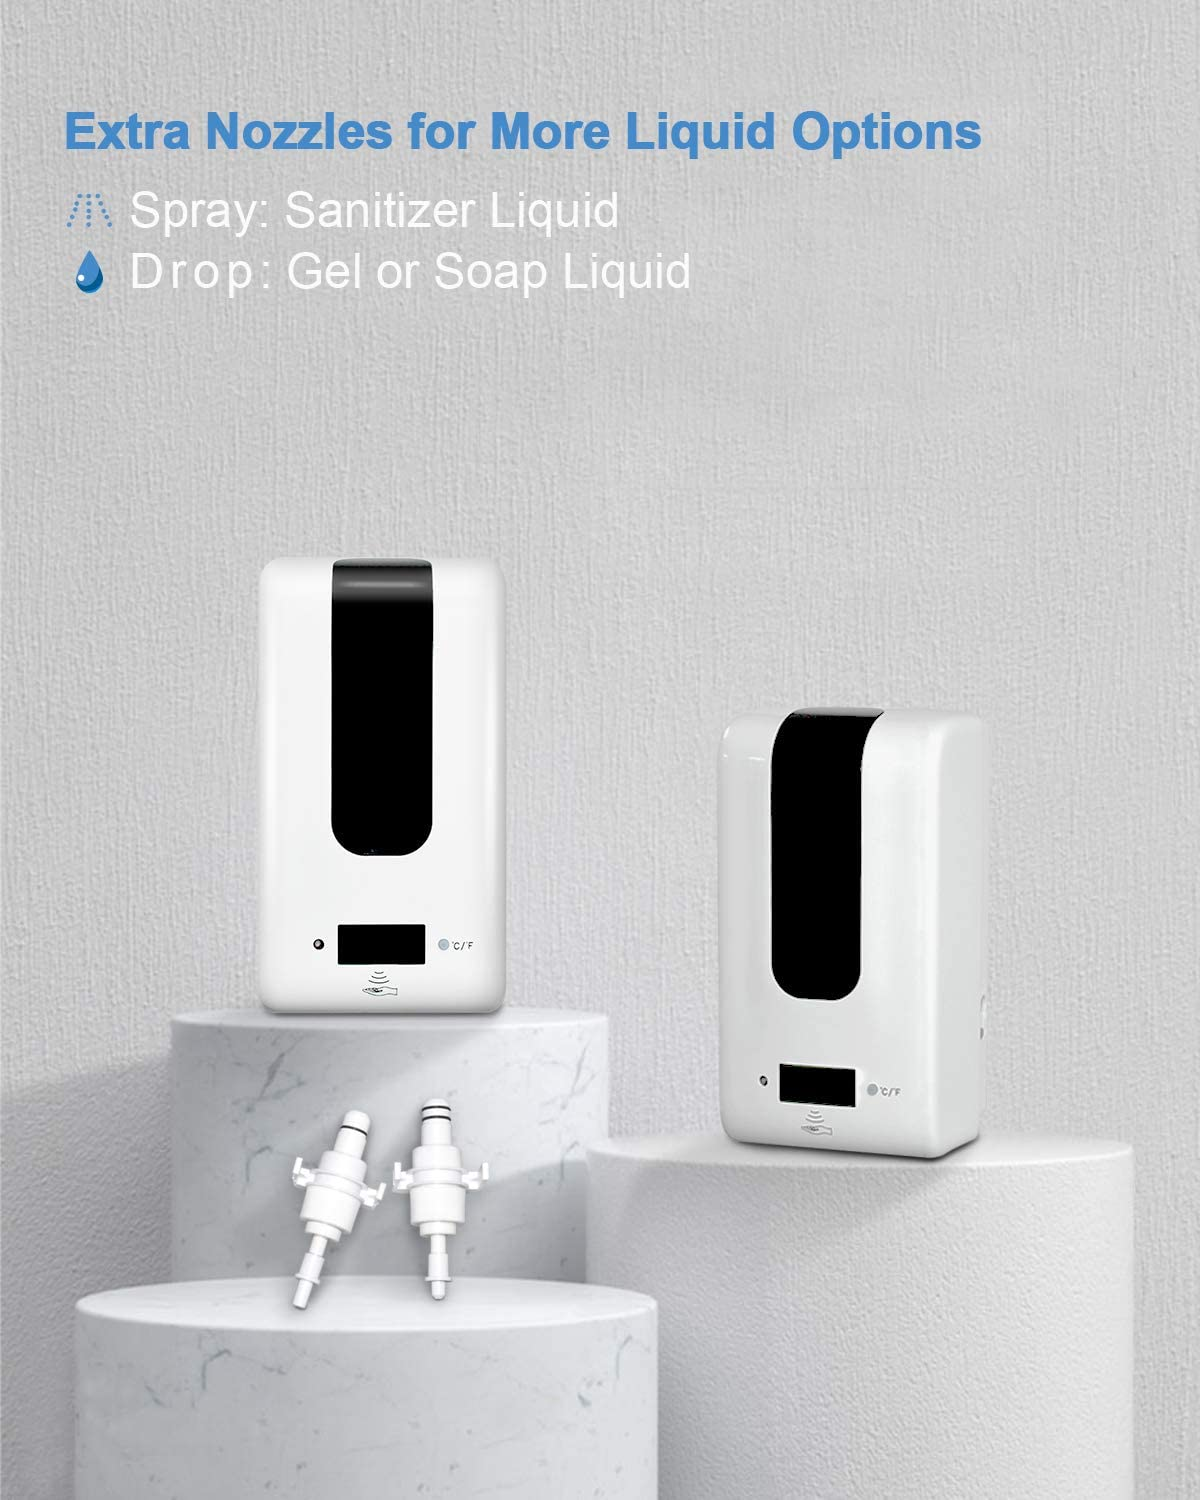 Yidax Automatic Hand Sanitizer Dispenser with Thermometer on Stand, Touchless Sanitizing Station with Temperature Measurement, Perfect for Home, Office, School and Commercial Industrial Public Areas: Home & Kitchen